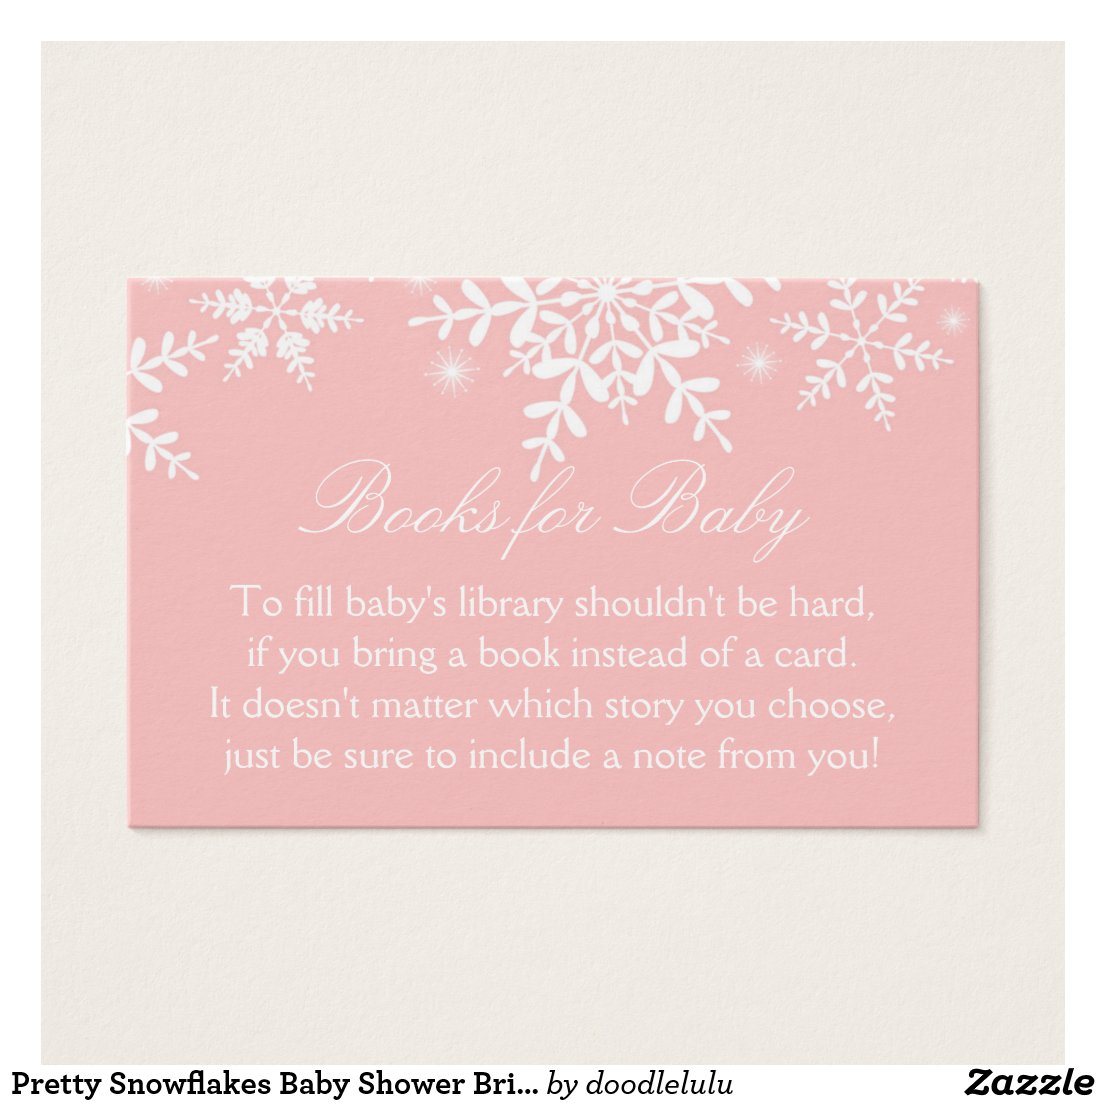 Pretty Snowflakes Baby Shower Bring a Book Card